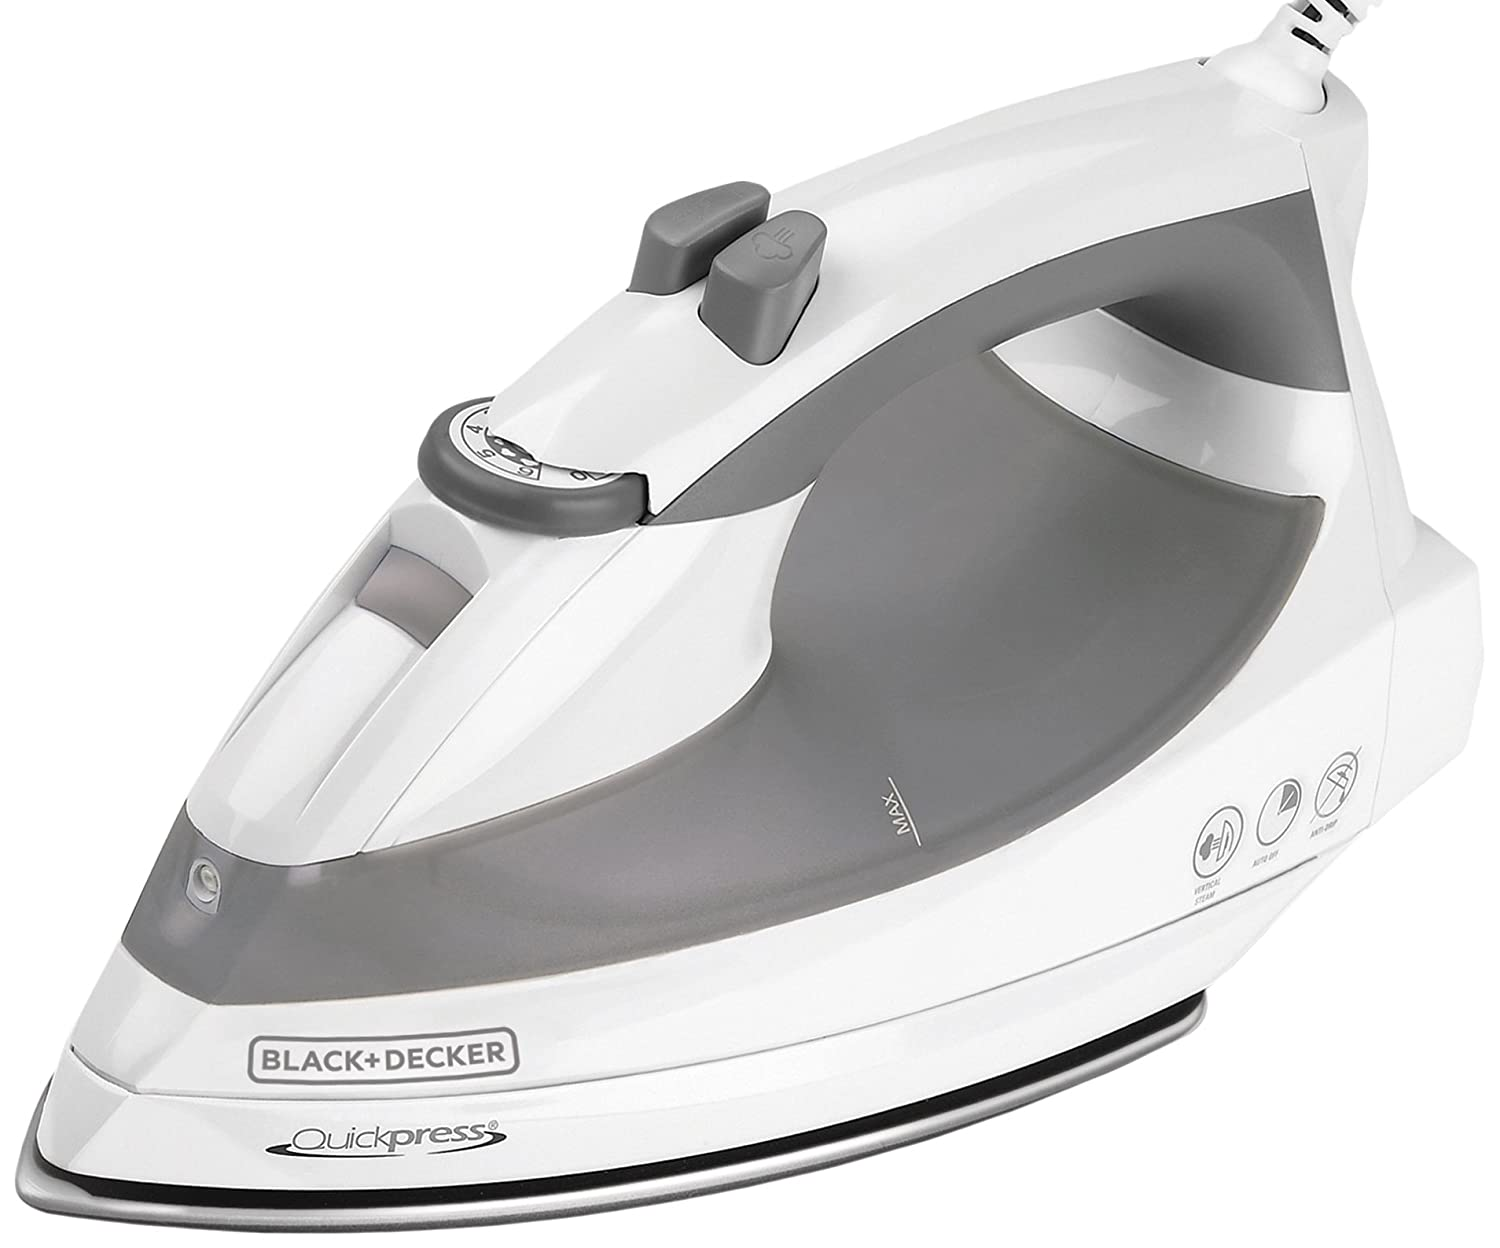 Black & Decker F976 Quickpress Iron with Smart Steam Technology, White/Silver